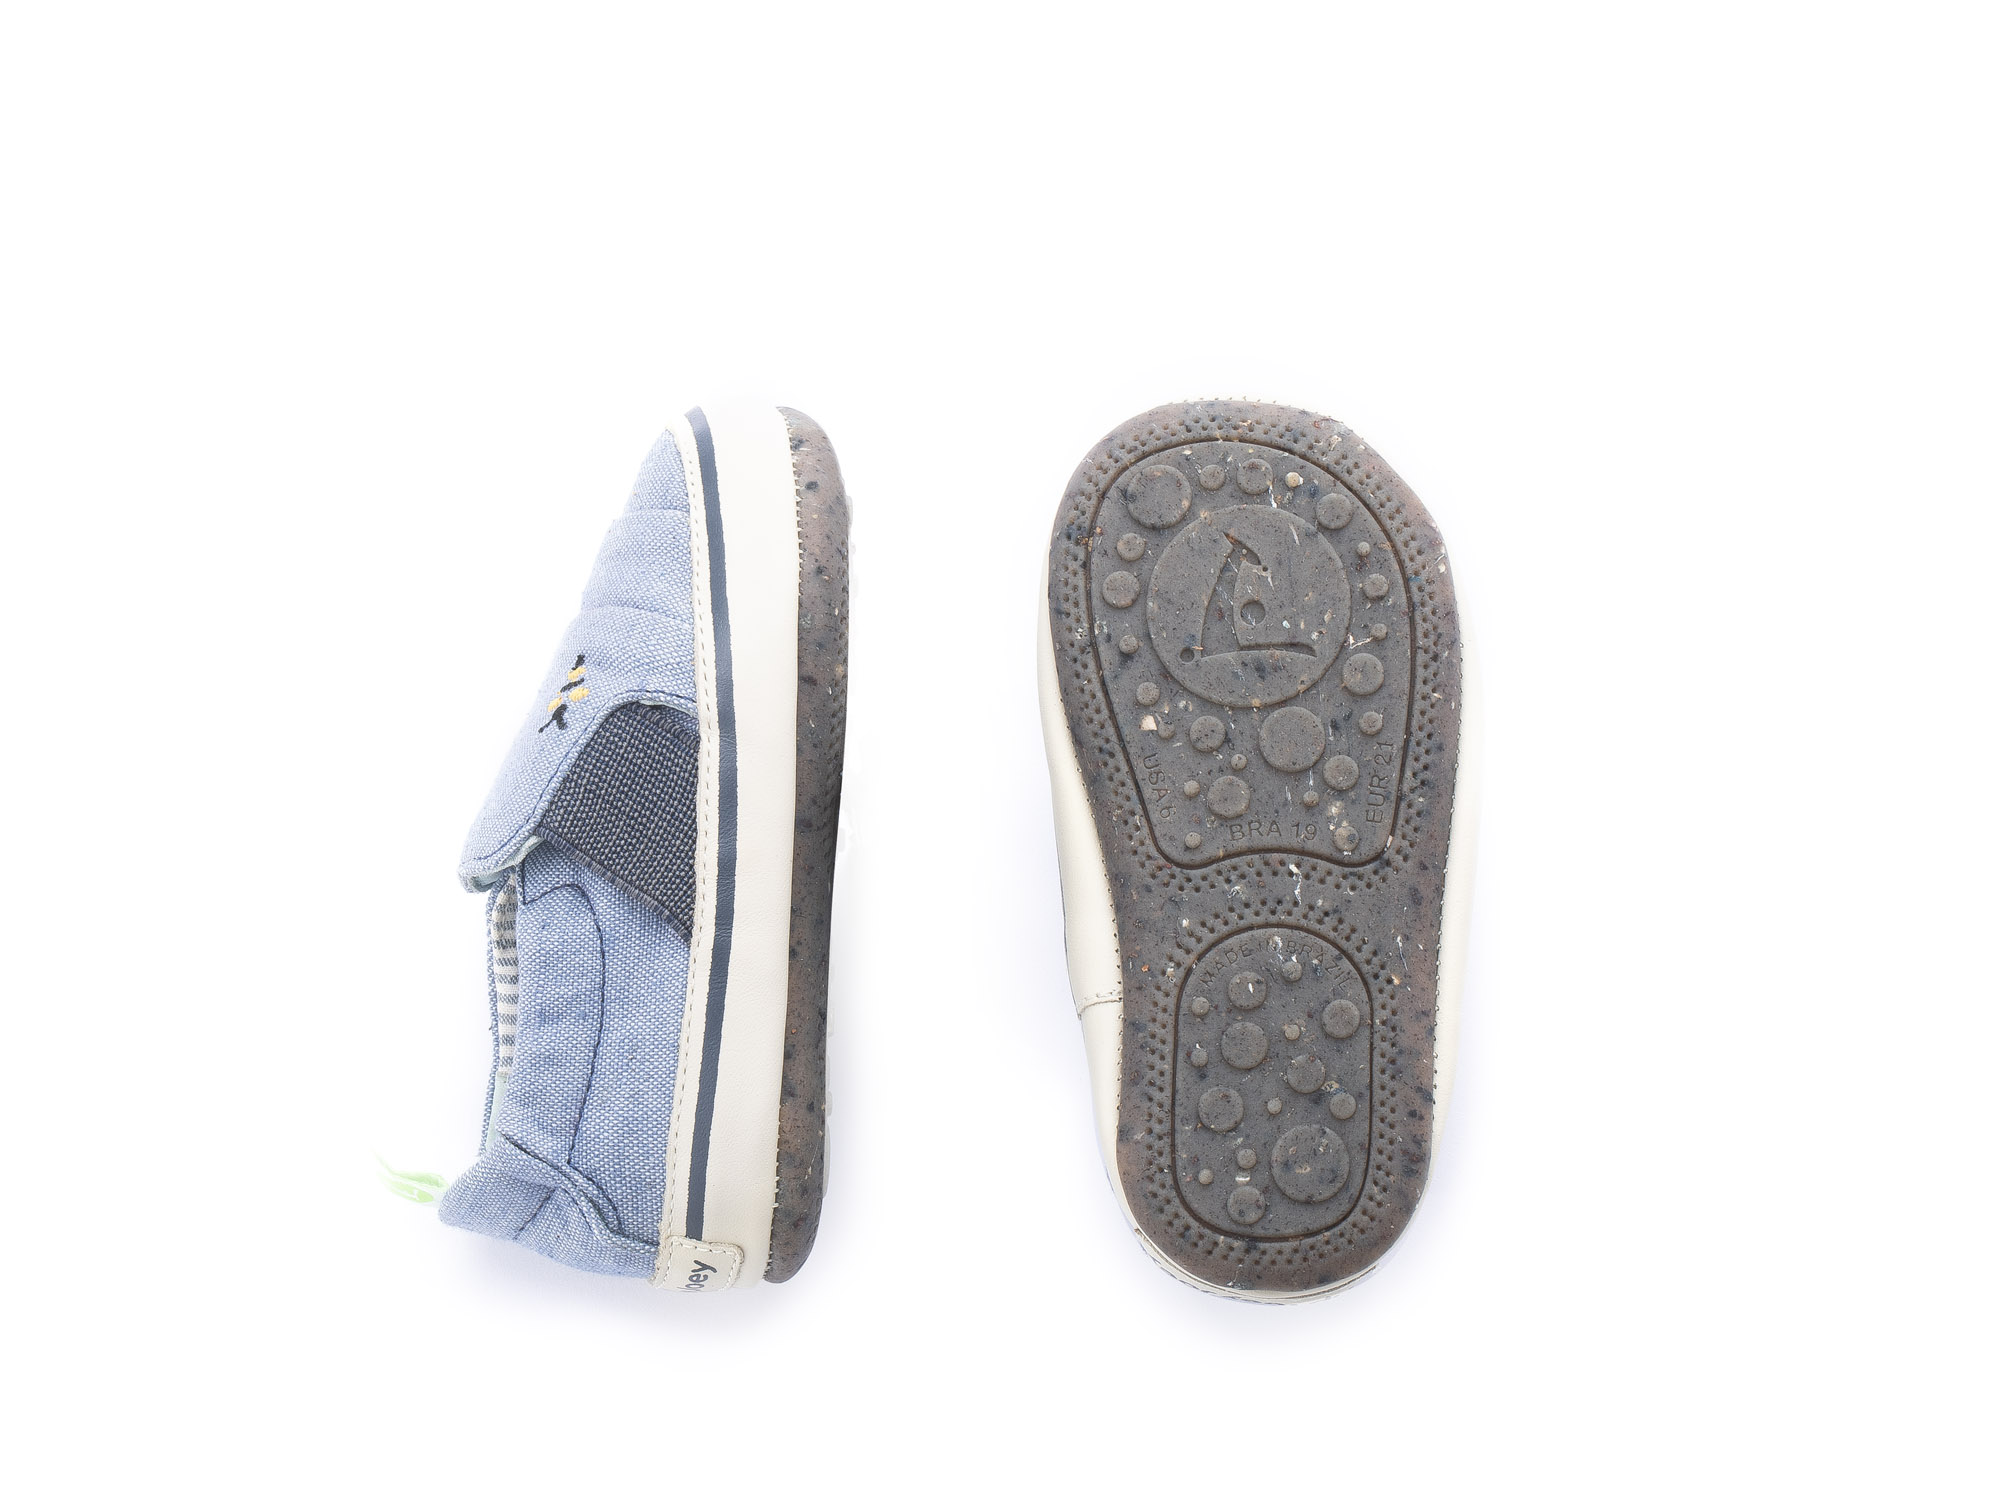 Sneaker Casual Slippy Light Blue Canvas Beeswax/ Tapioca Baby 0 à 2 anos - 1